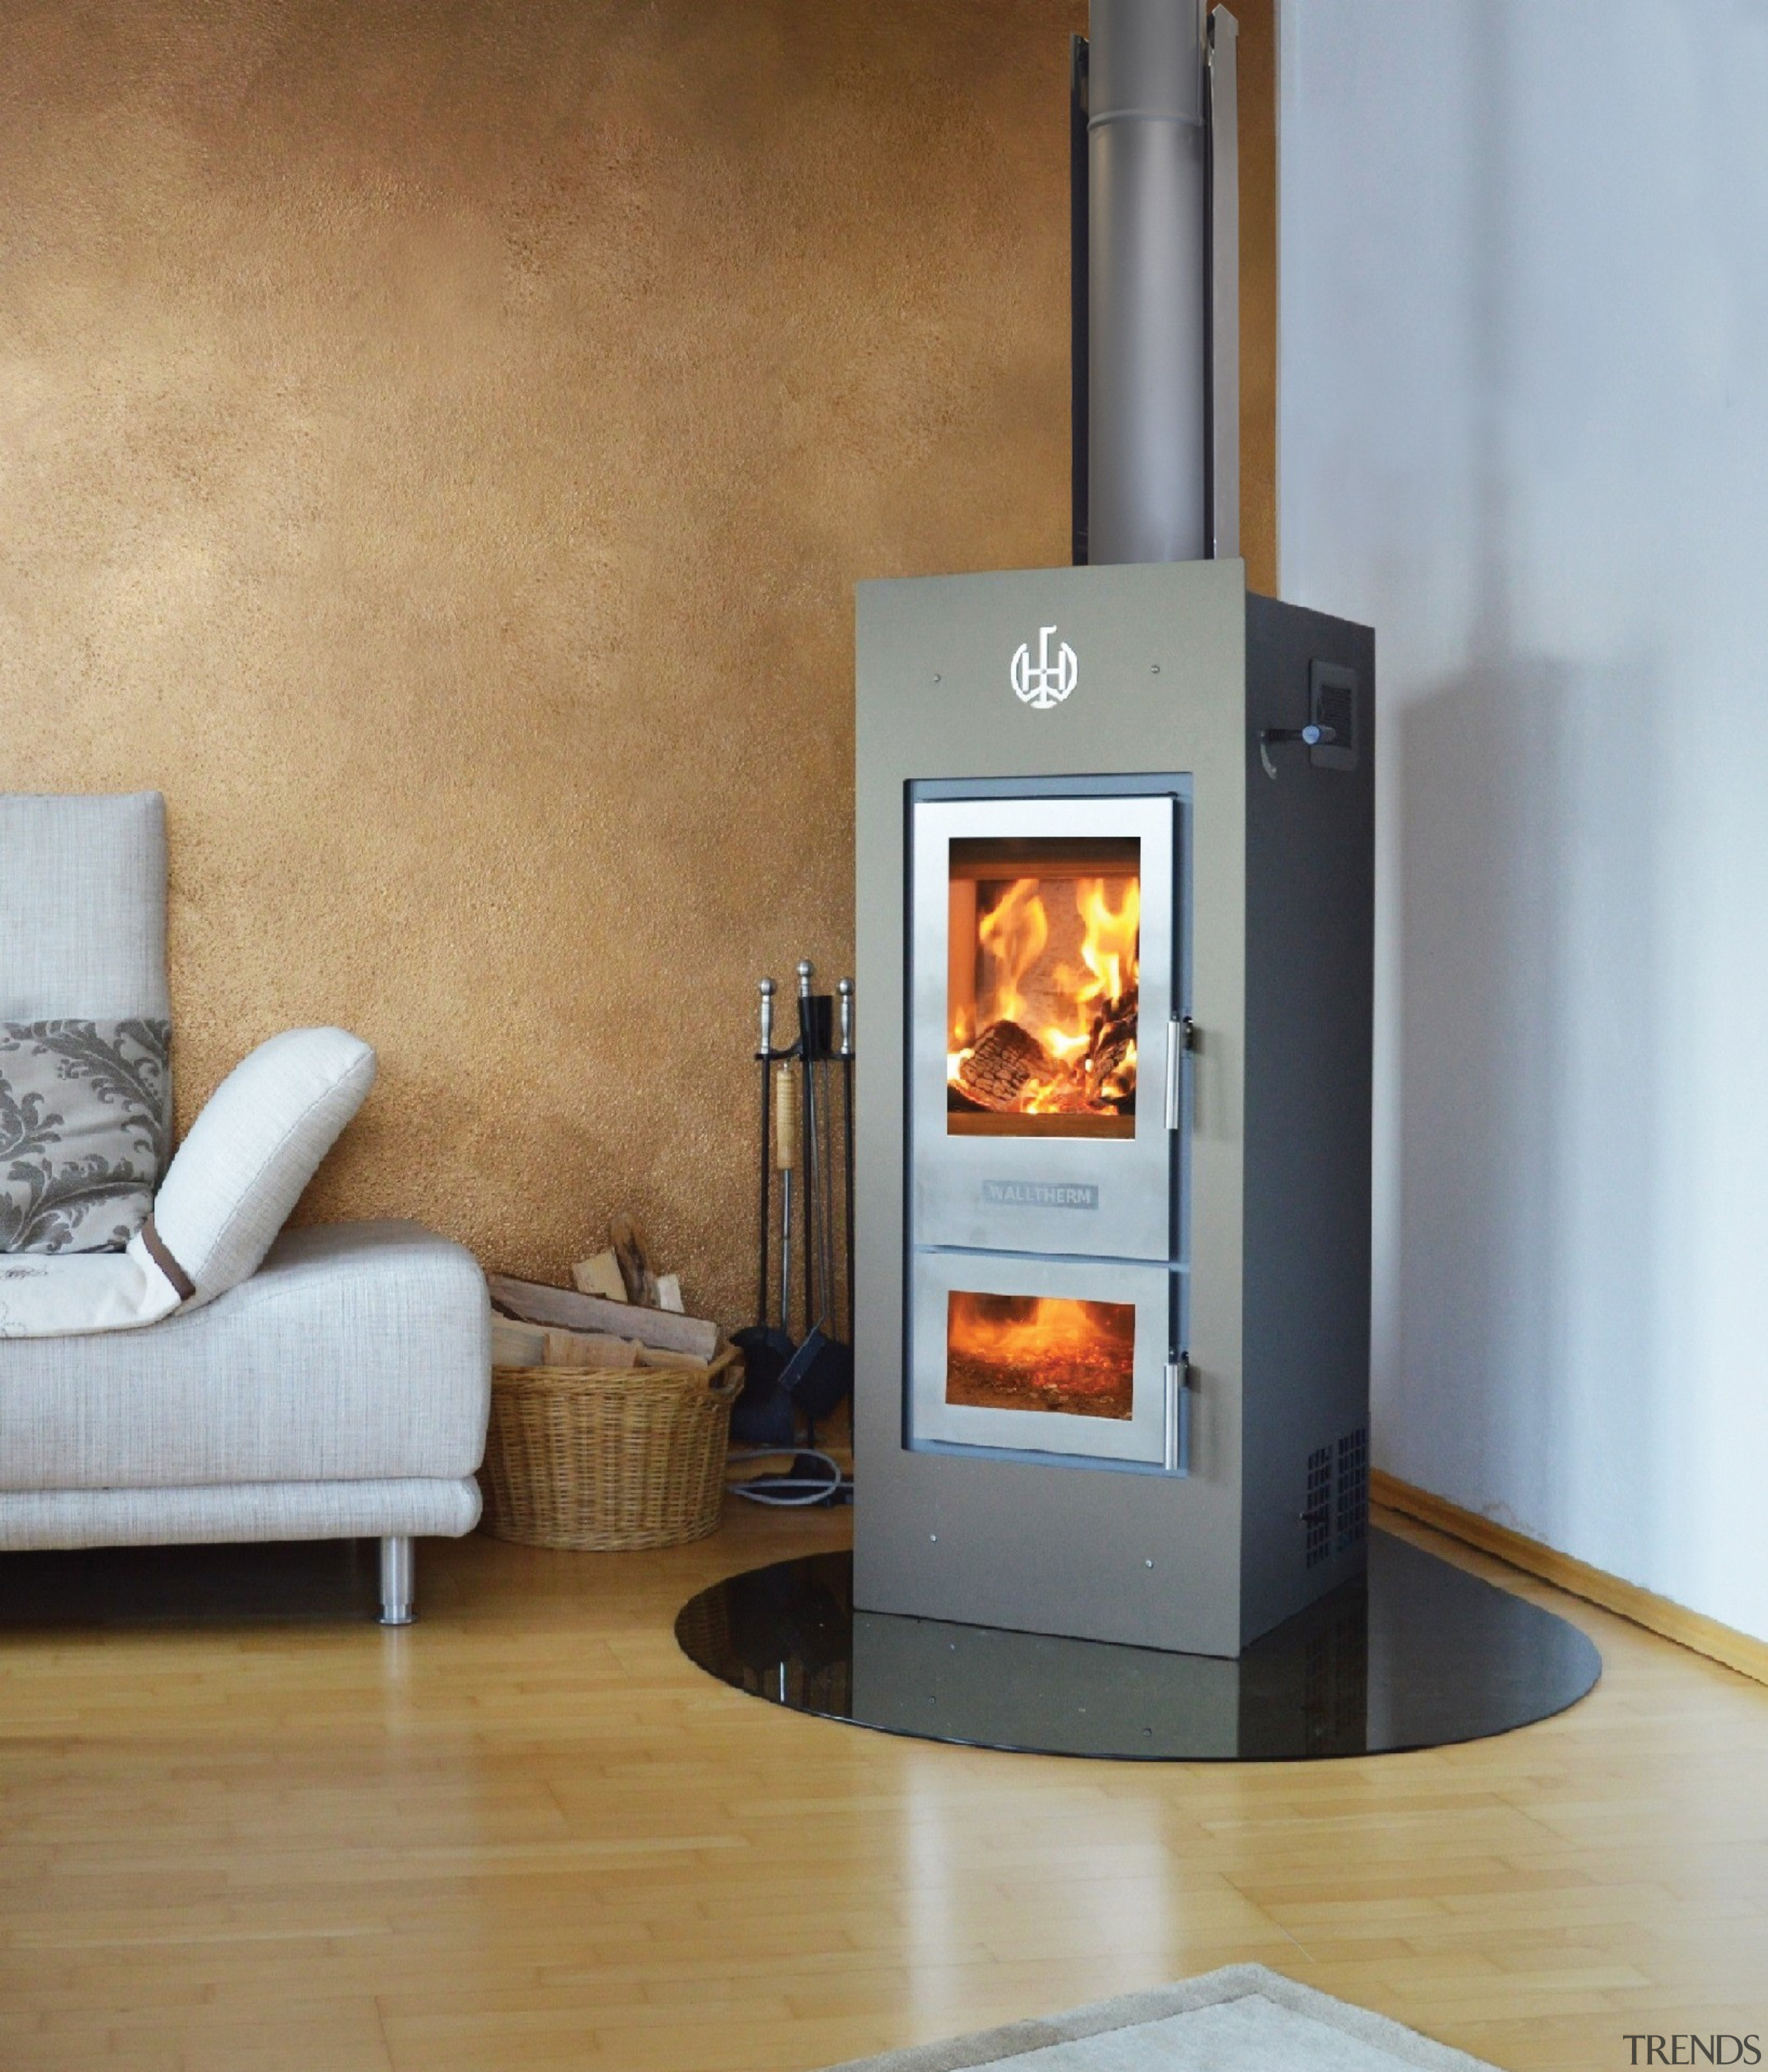 Jayline Walltherm-Air - Jayline Walltherm-Air - hearth   hearth, heat, home appliance, major appliance, stove, wood burning stove, gray, brown